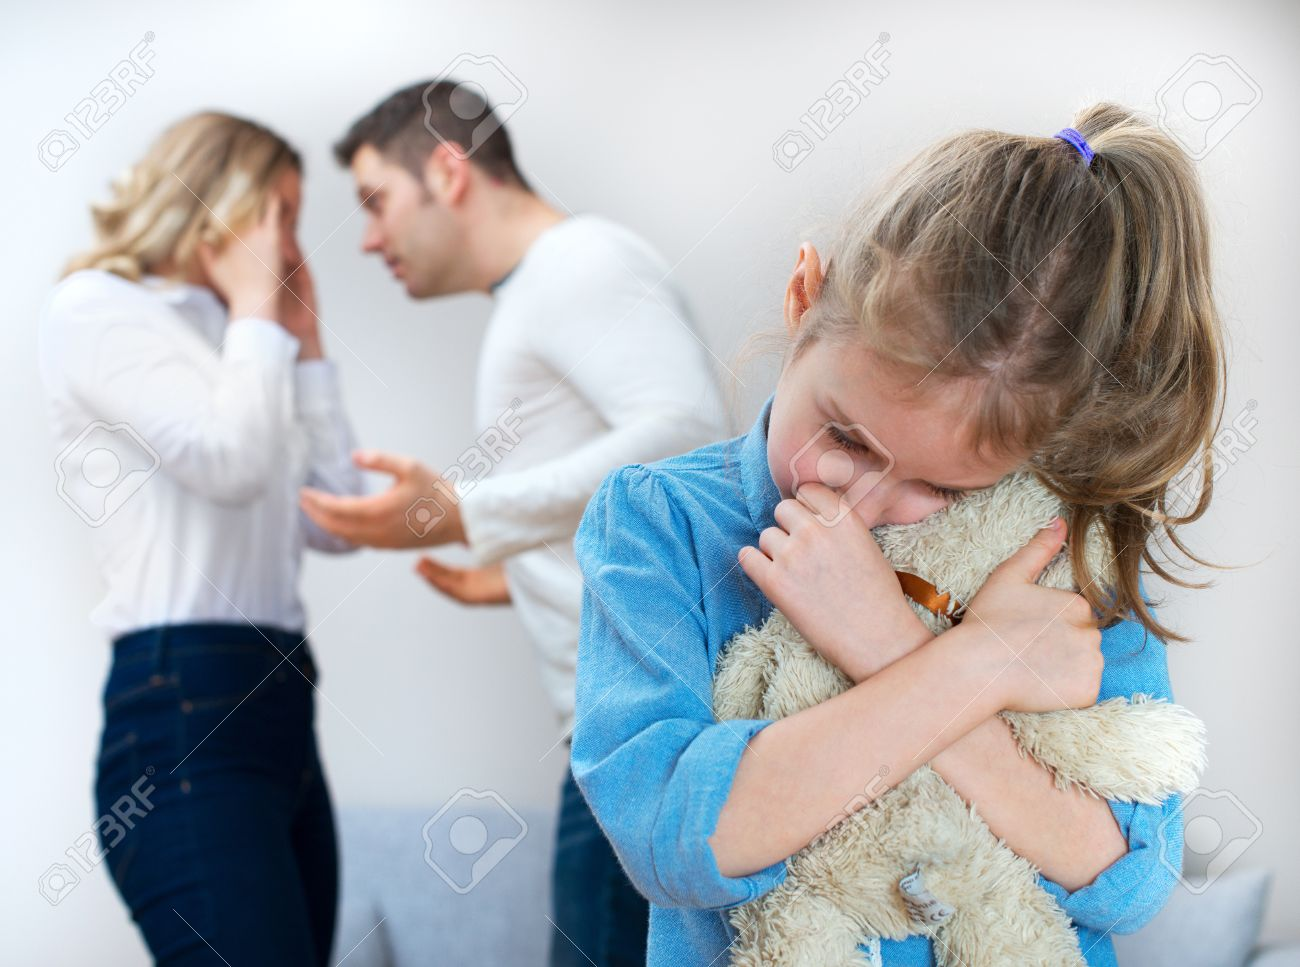 Parents quarreling at home, child is suffering. - 50404501